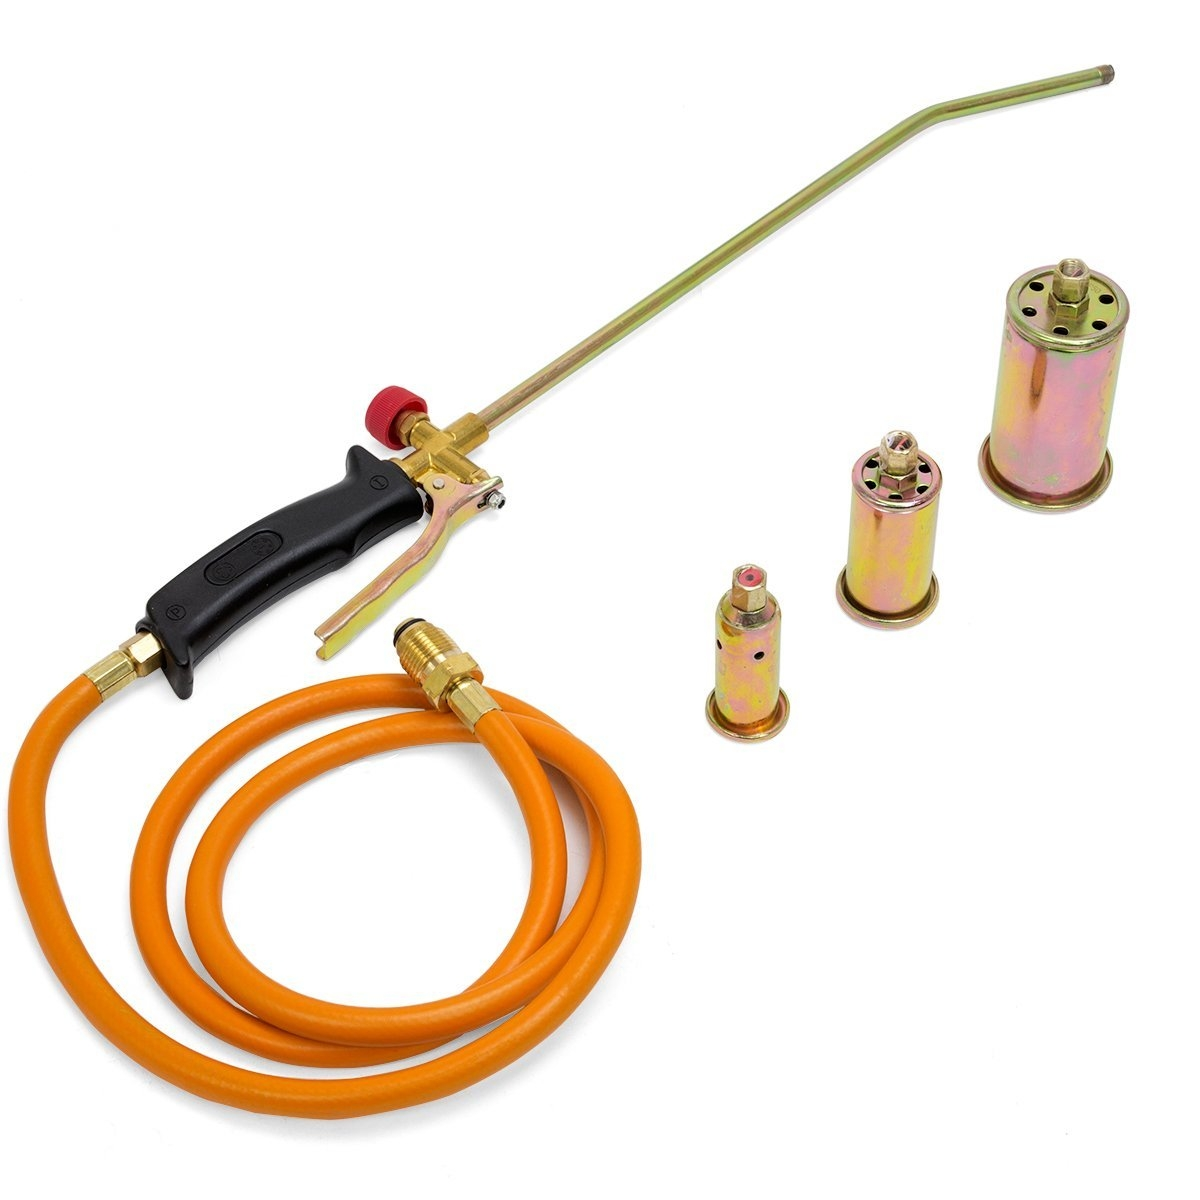 STARK Propane Torch with 3 Nozzles Portable Melting Ice S...